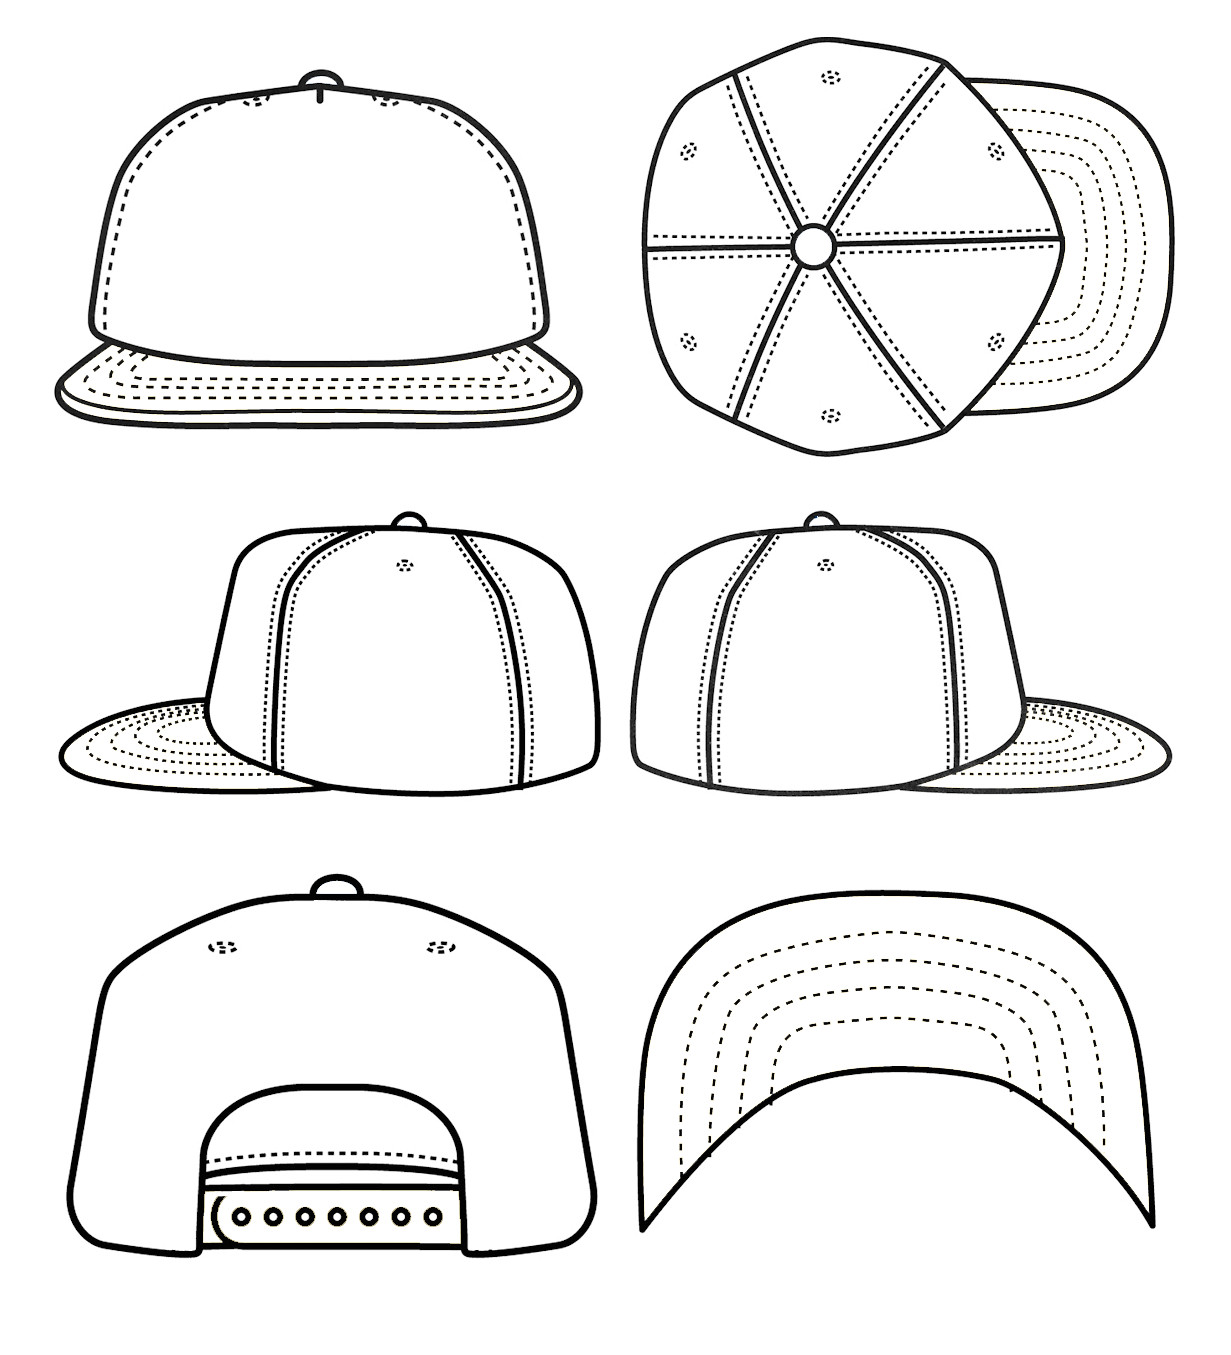 new 77 beanie hat design template